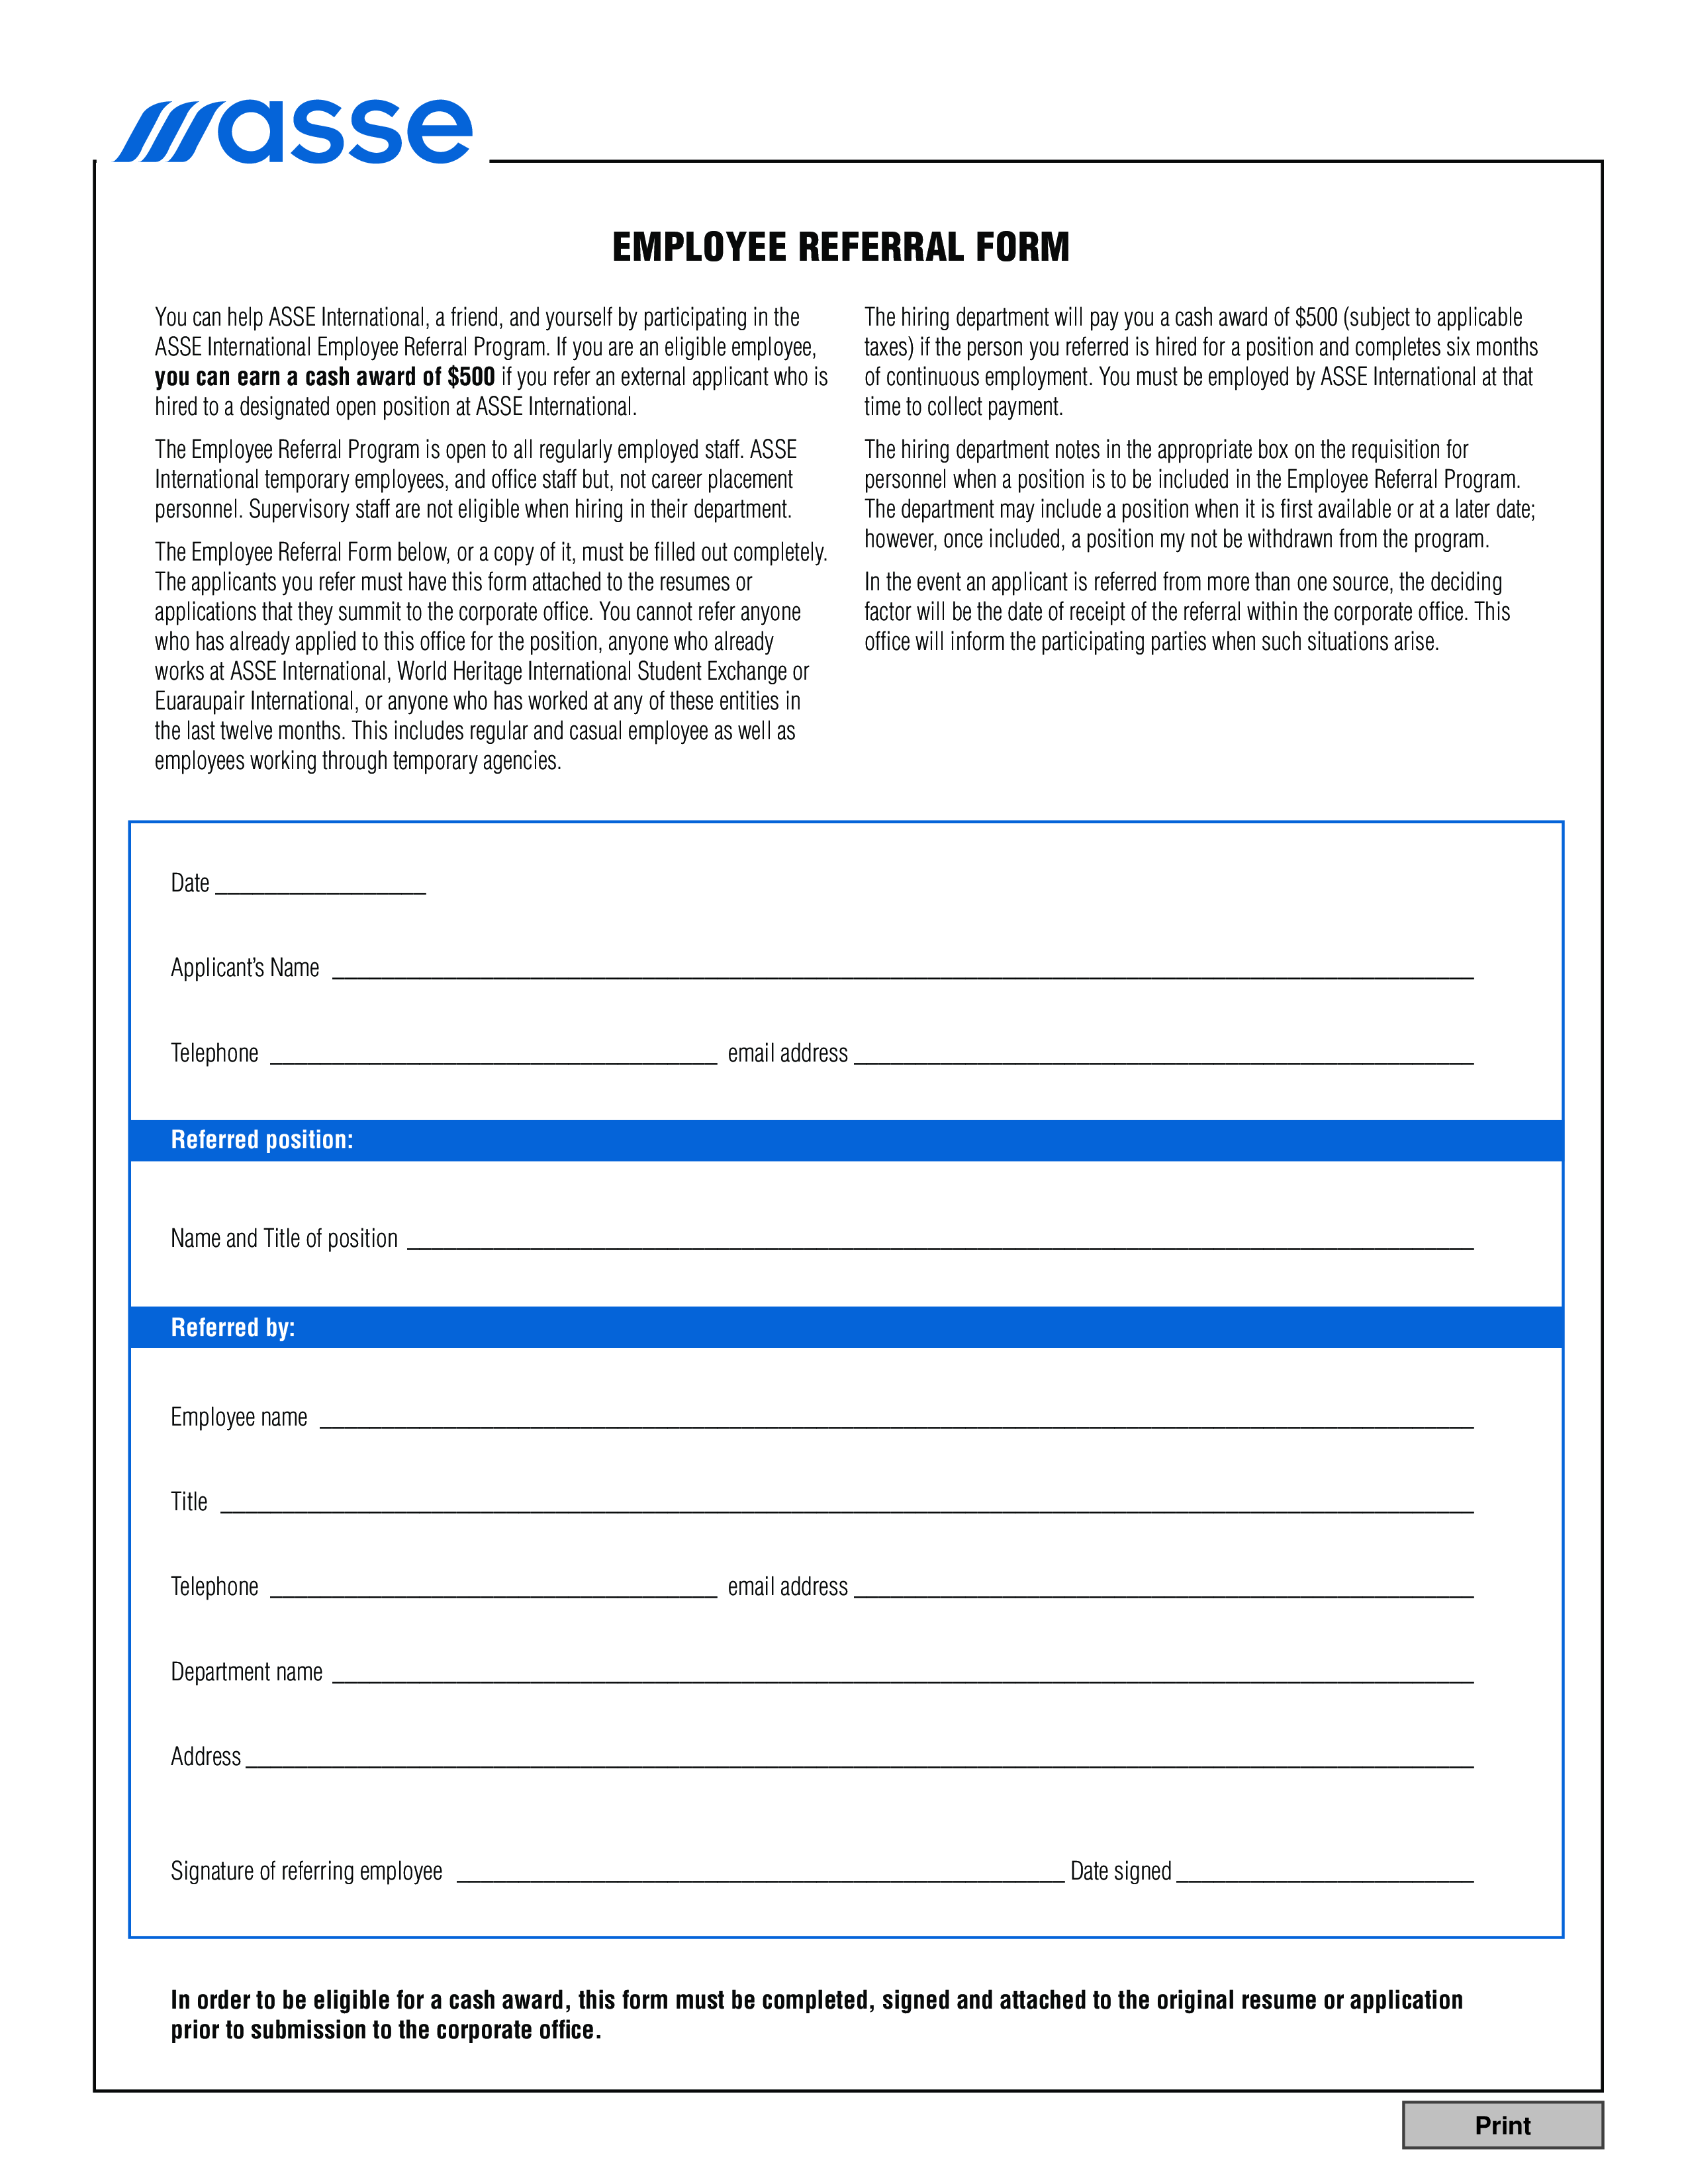 Employee Referral Form Template from www.allbusinesstemplates.com